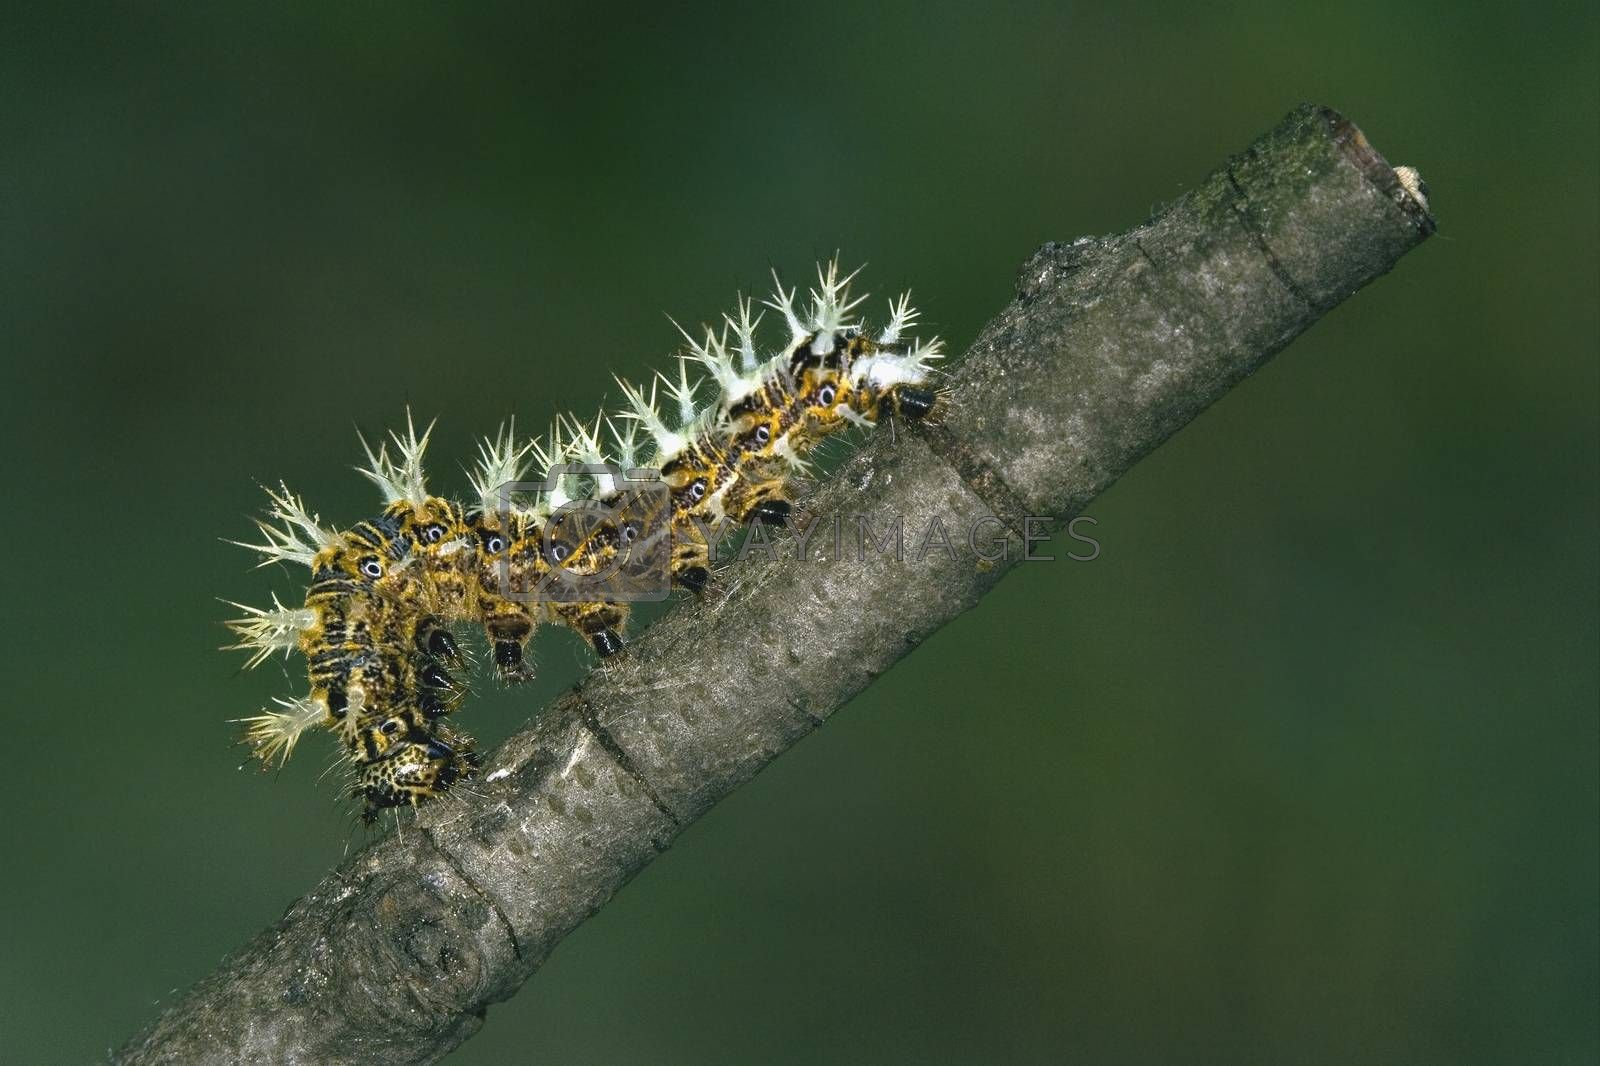 Royalty free image of caterpillar of Papilionidae in the branch by lkpro